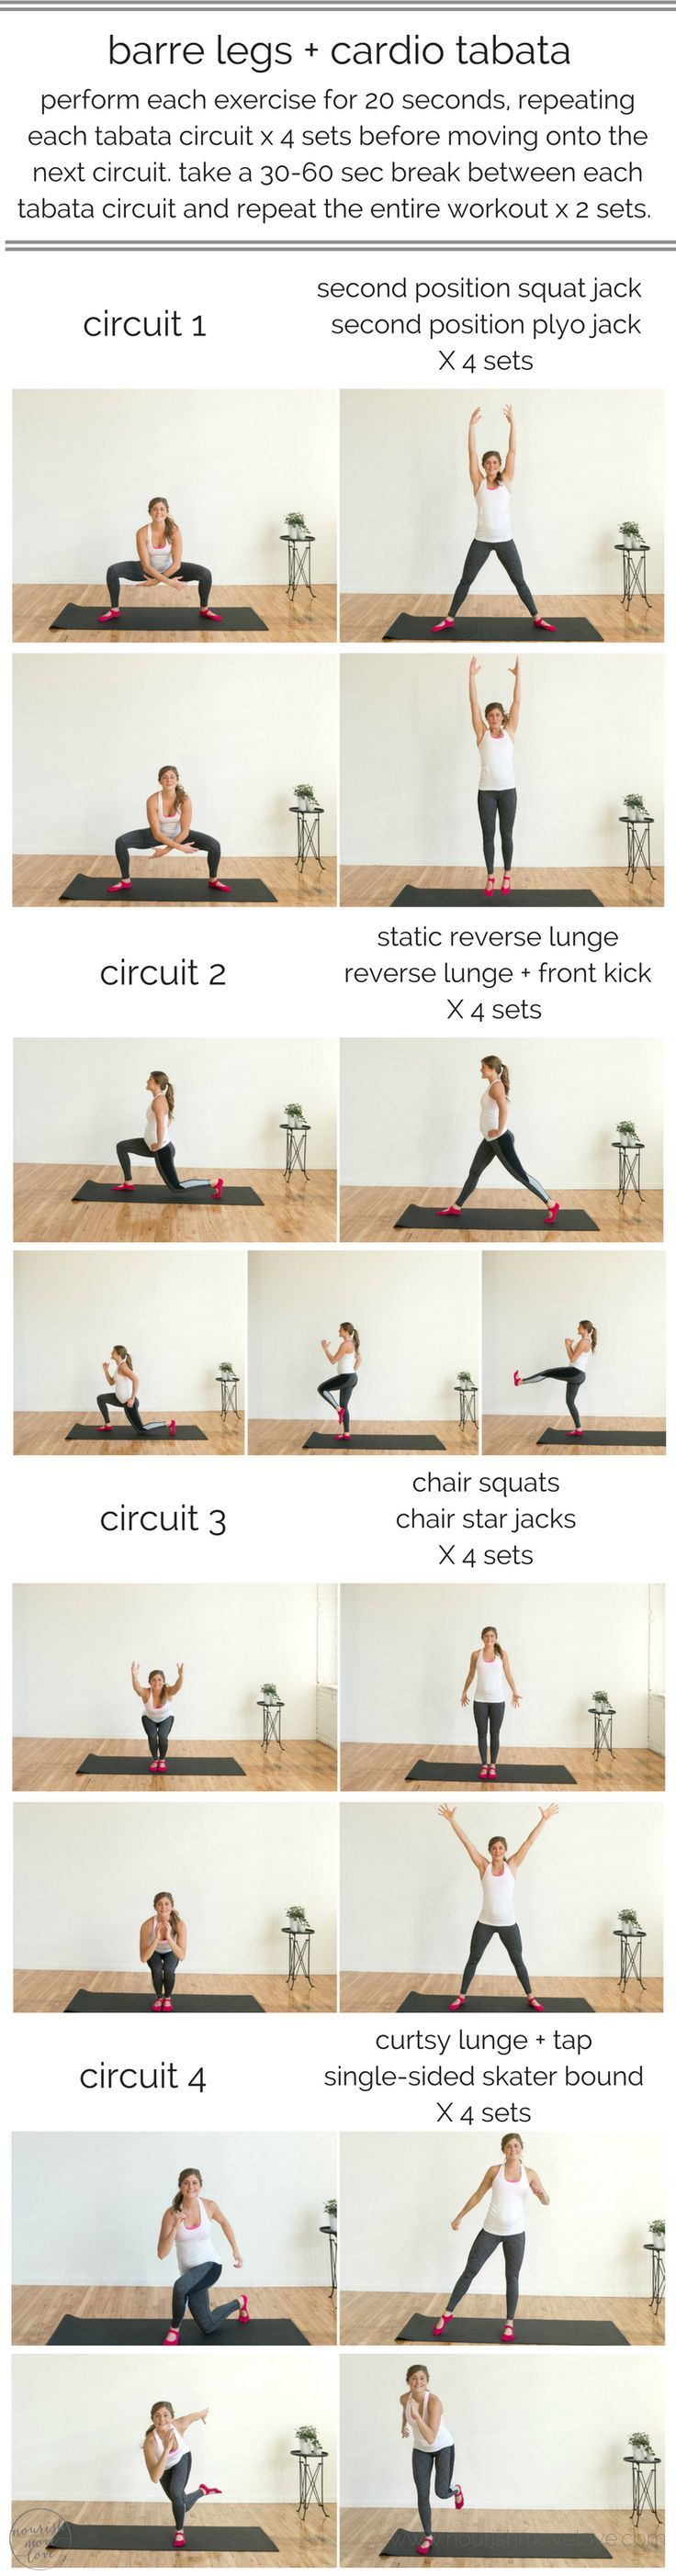 398 best high intensity interval training {HIIT} images on Pinterest ...